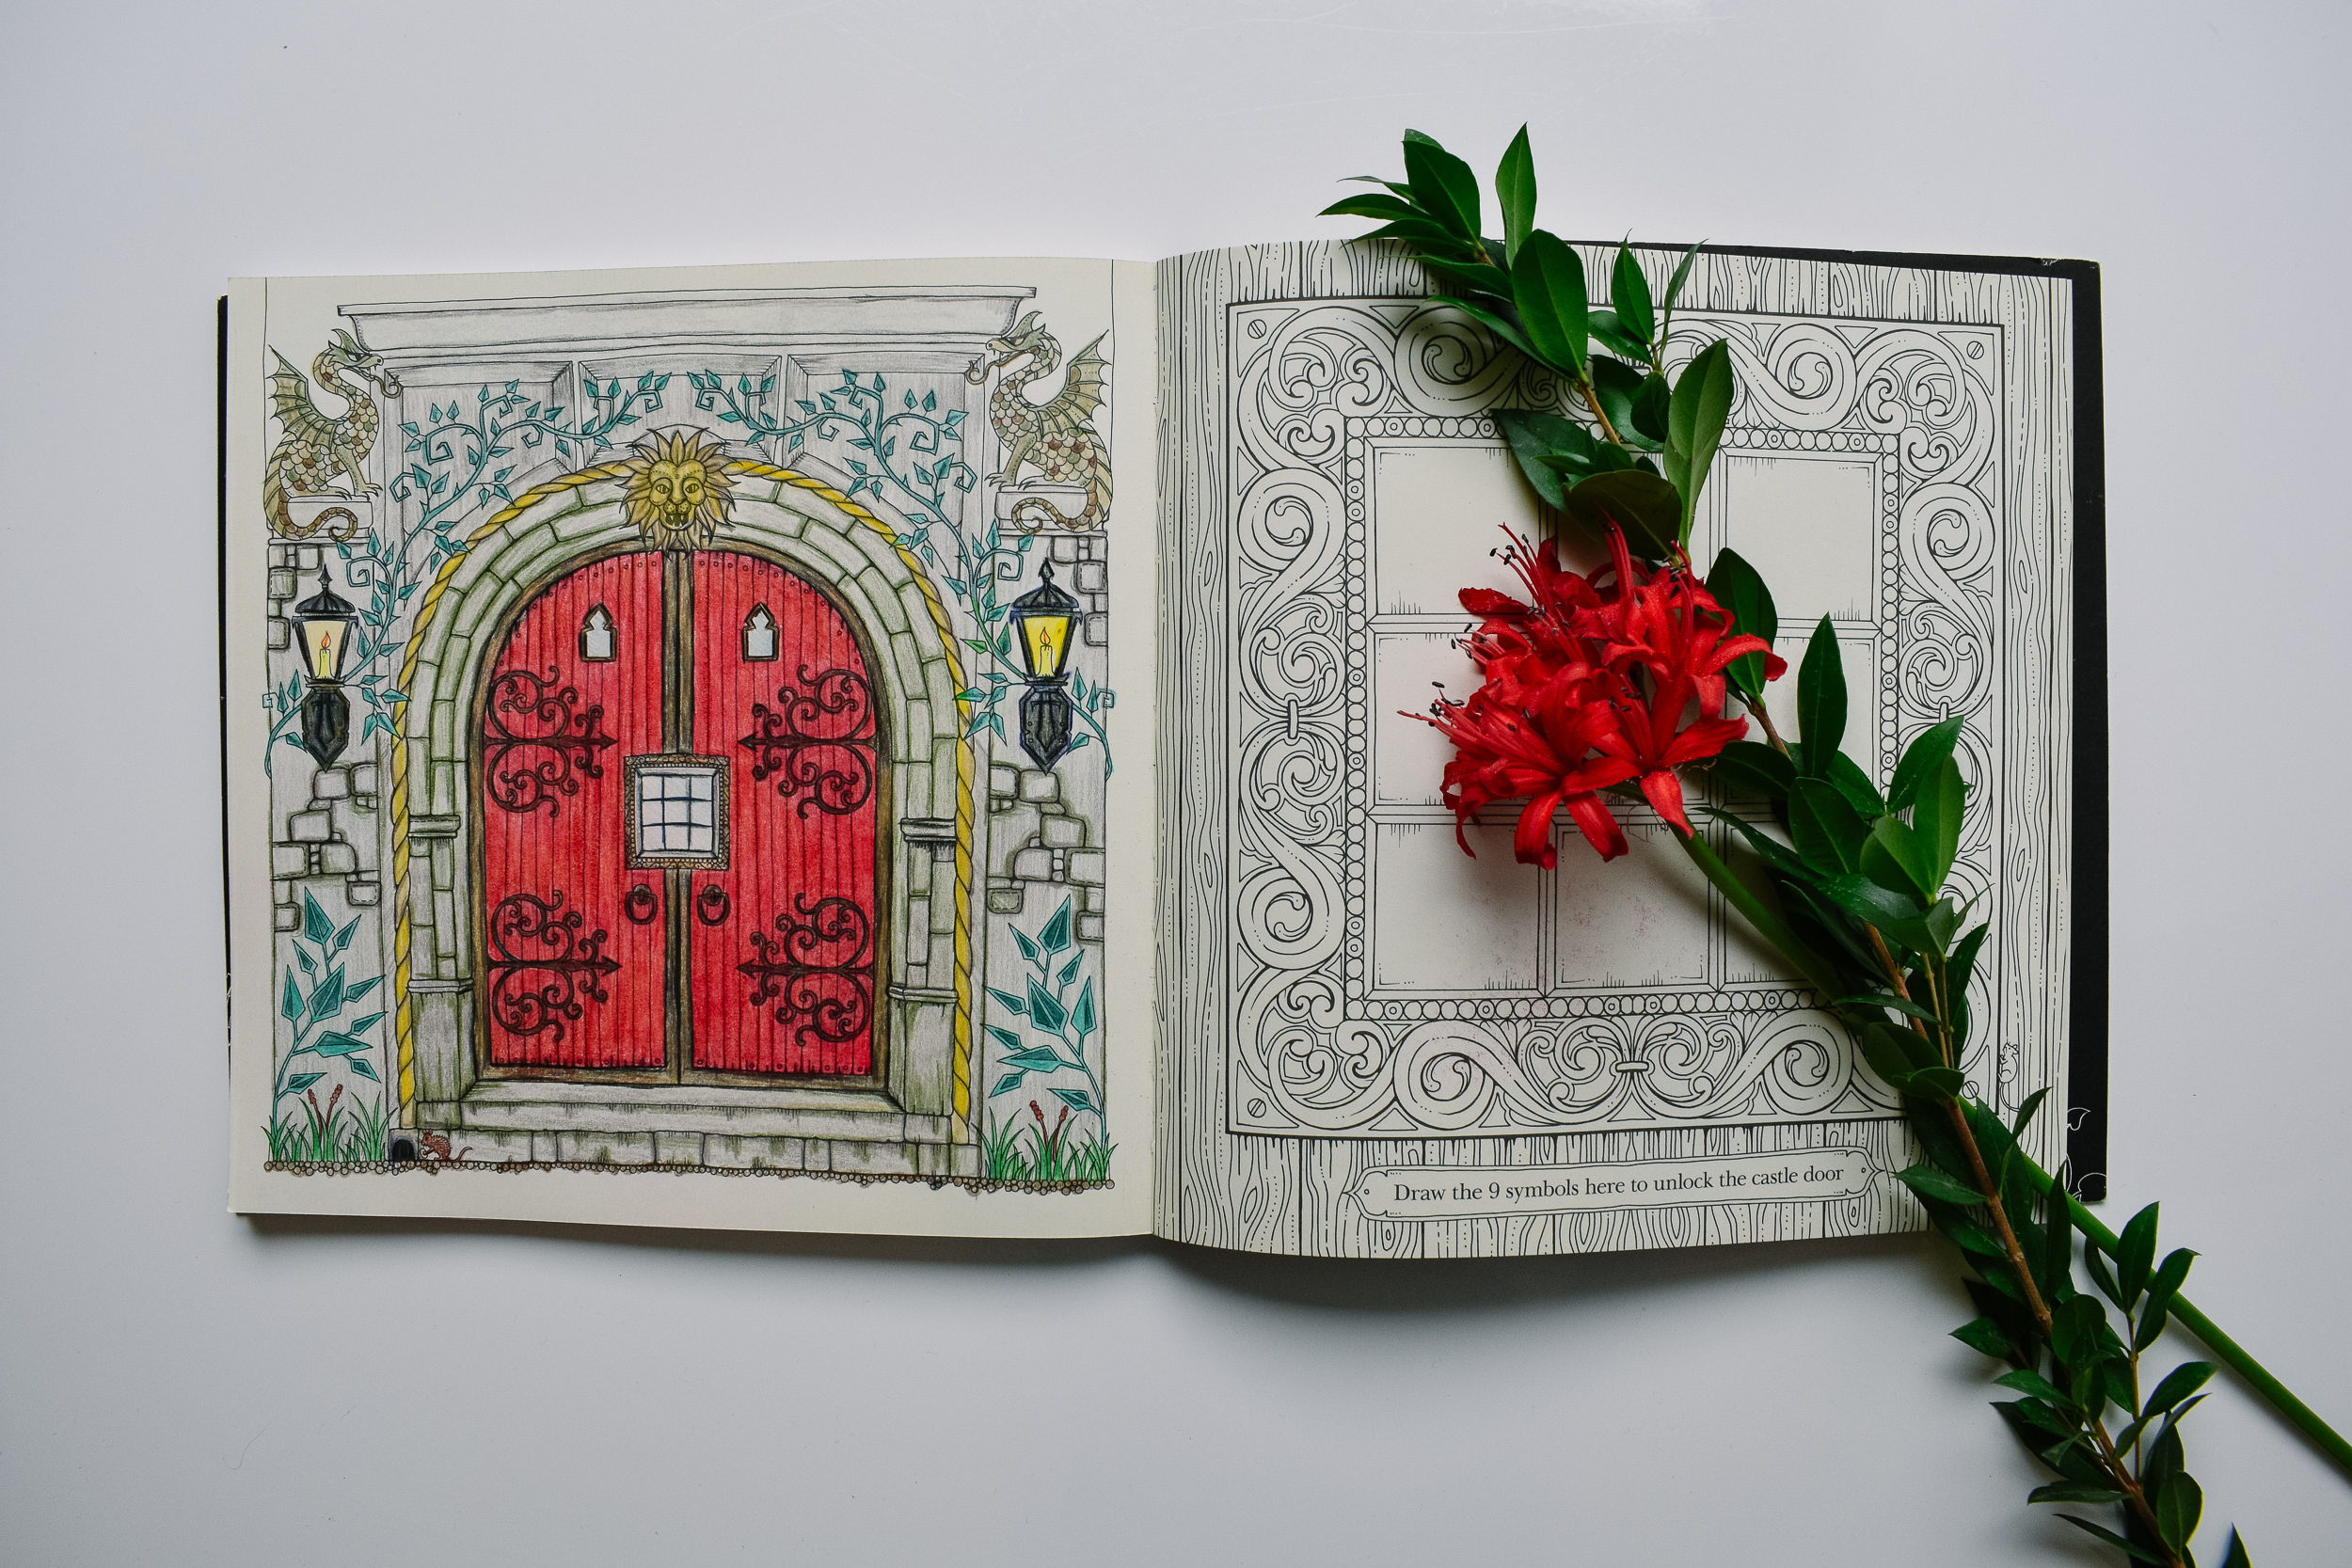 Adult Coloring Book - Coloring can be a great way for busy minds to slow down and meditate. The intricate designs are stunning and make everyone feel like an artist.